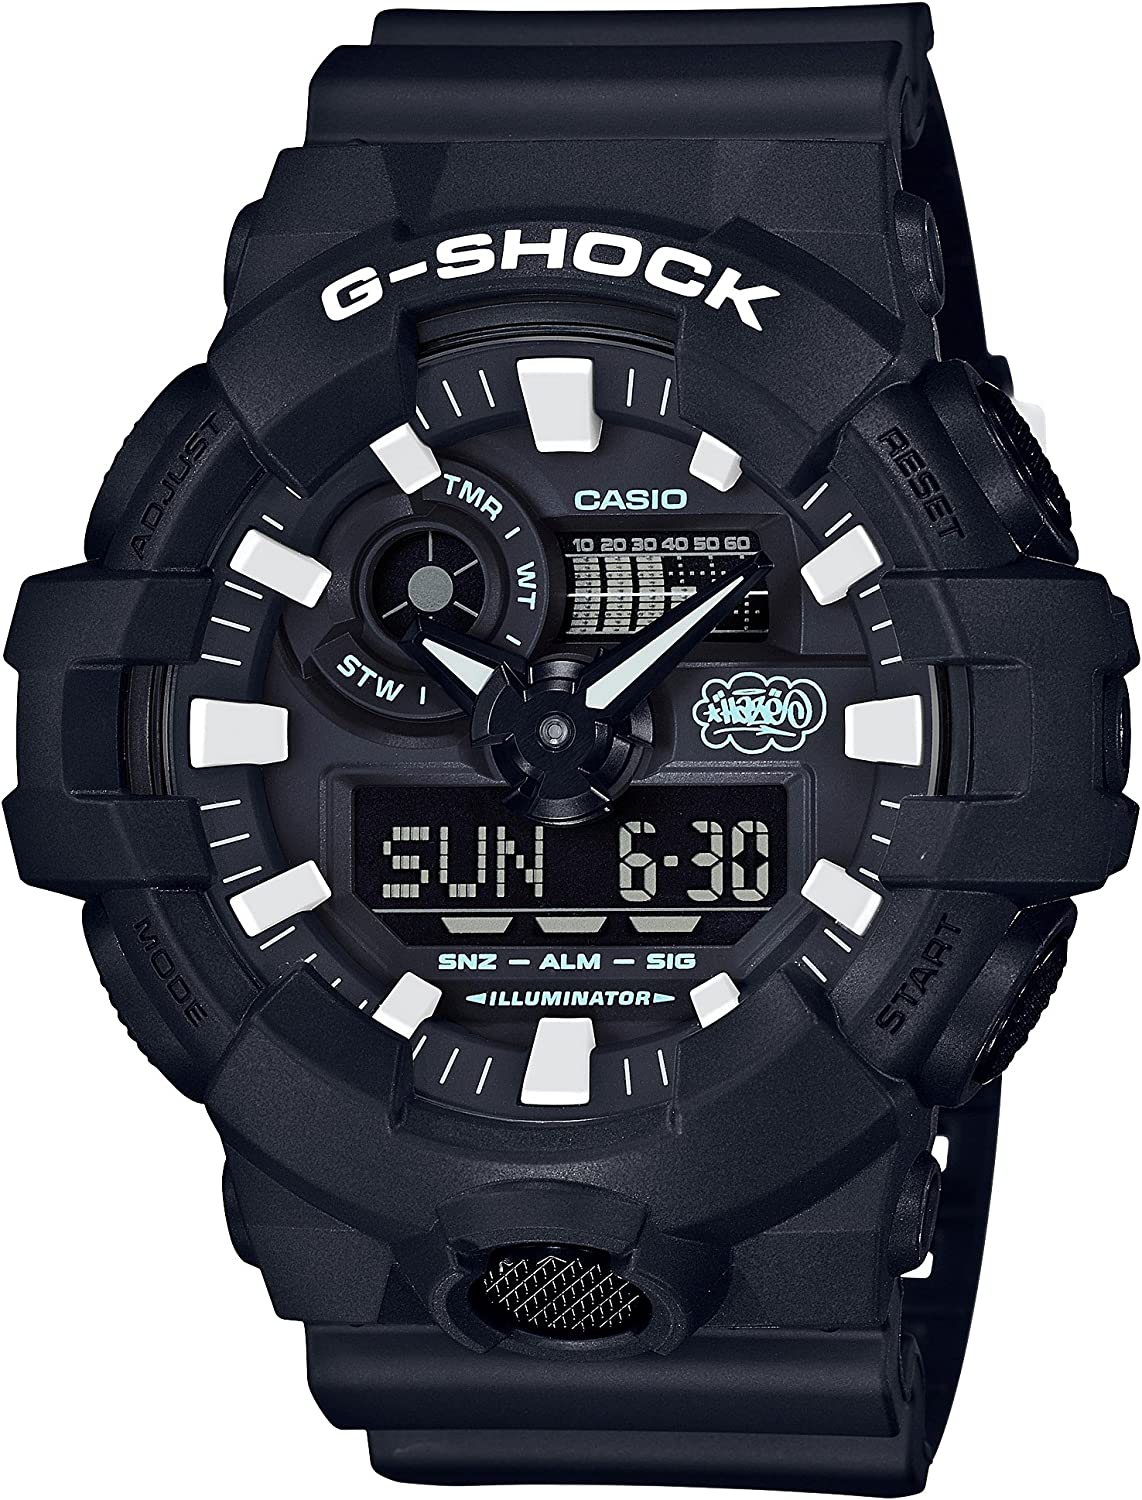 CASIO G-SHOCK 35th Anniversary Collaboration Series G-Shock ERIC Haze GA-700EH-1AJR Mens Japan Import